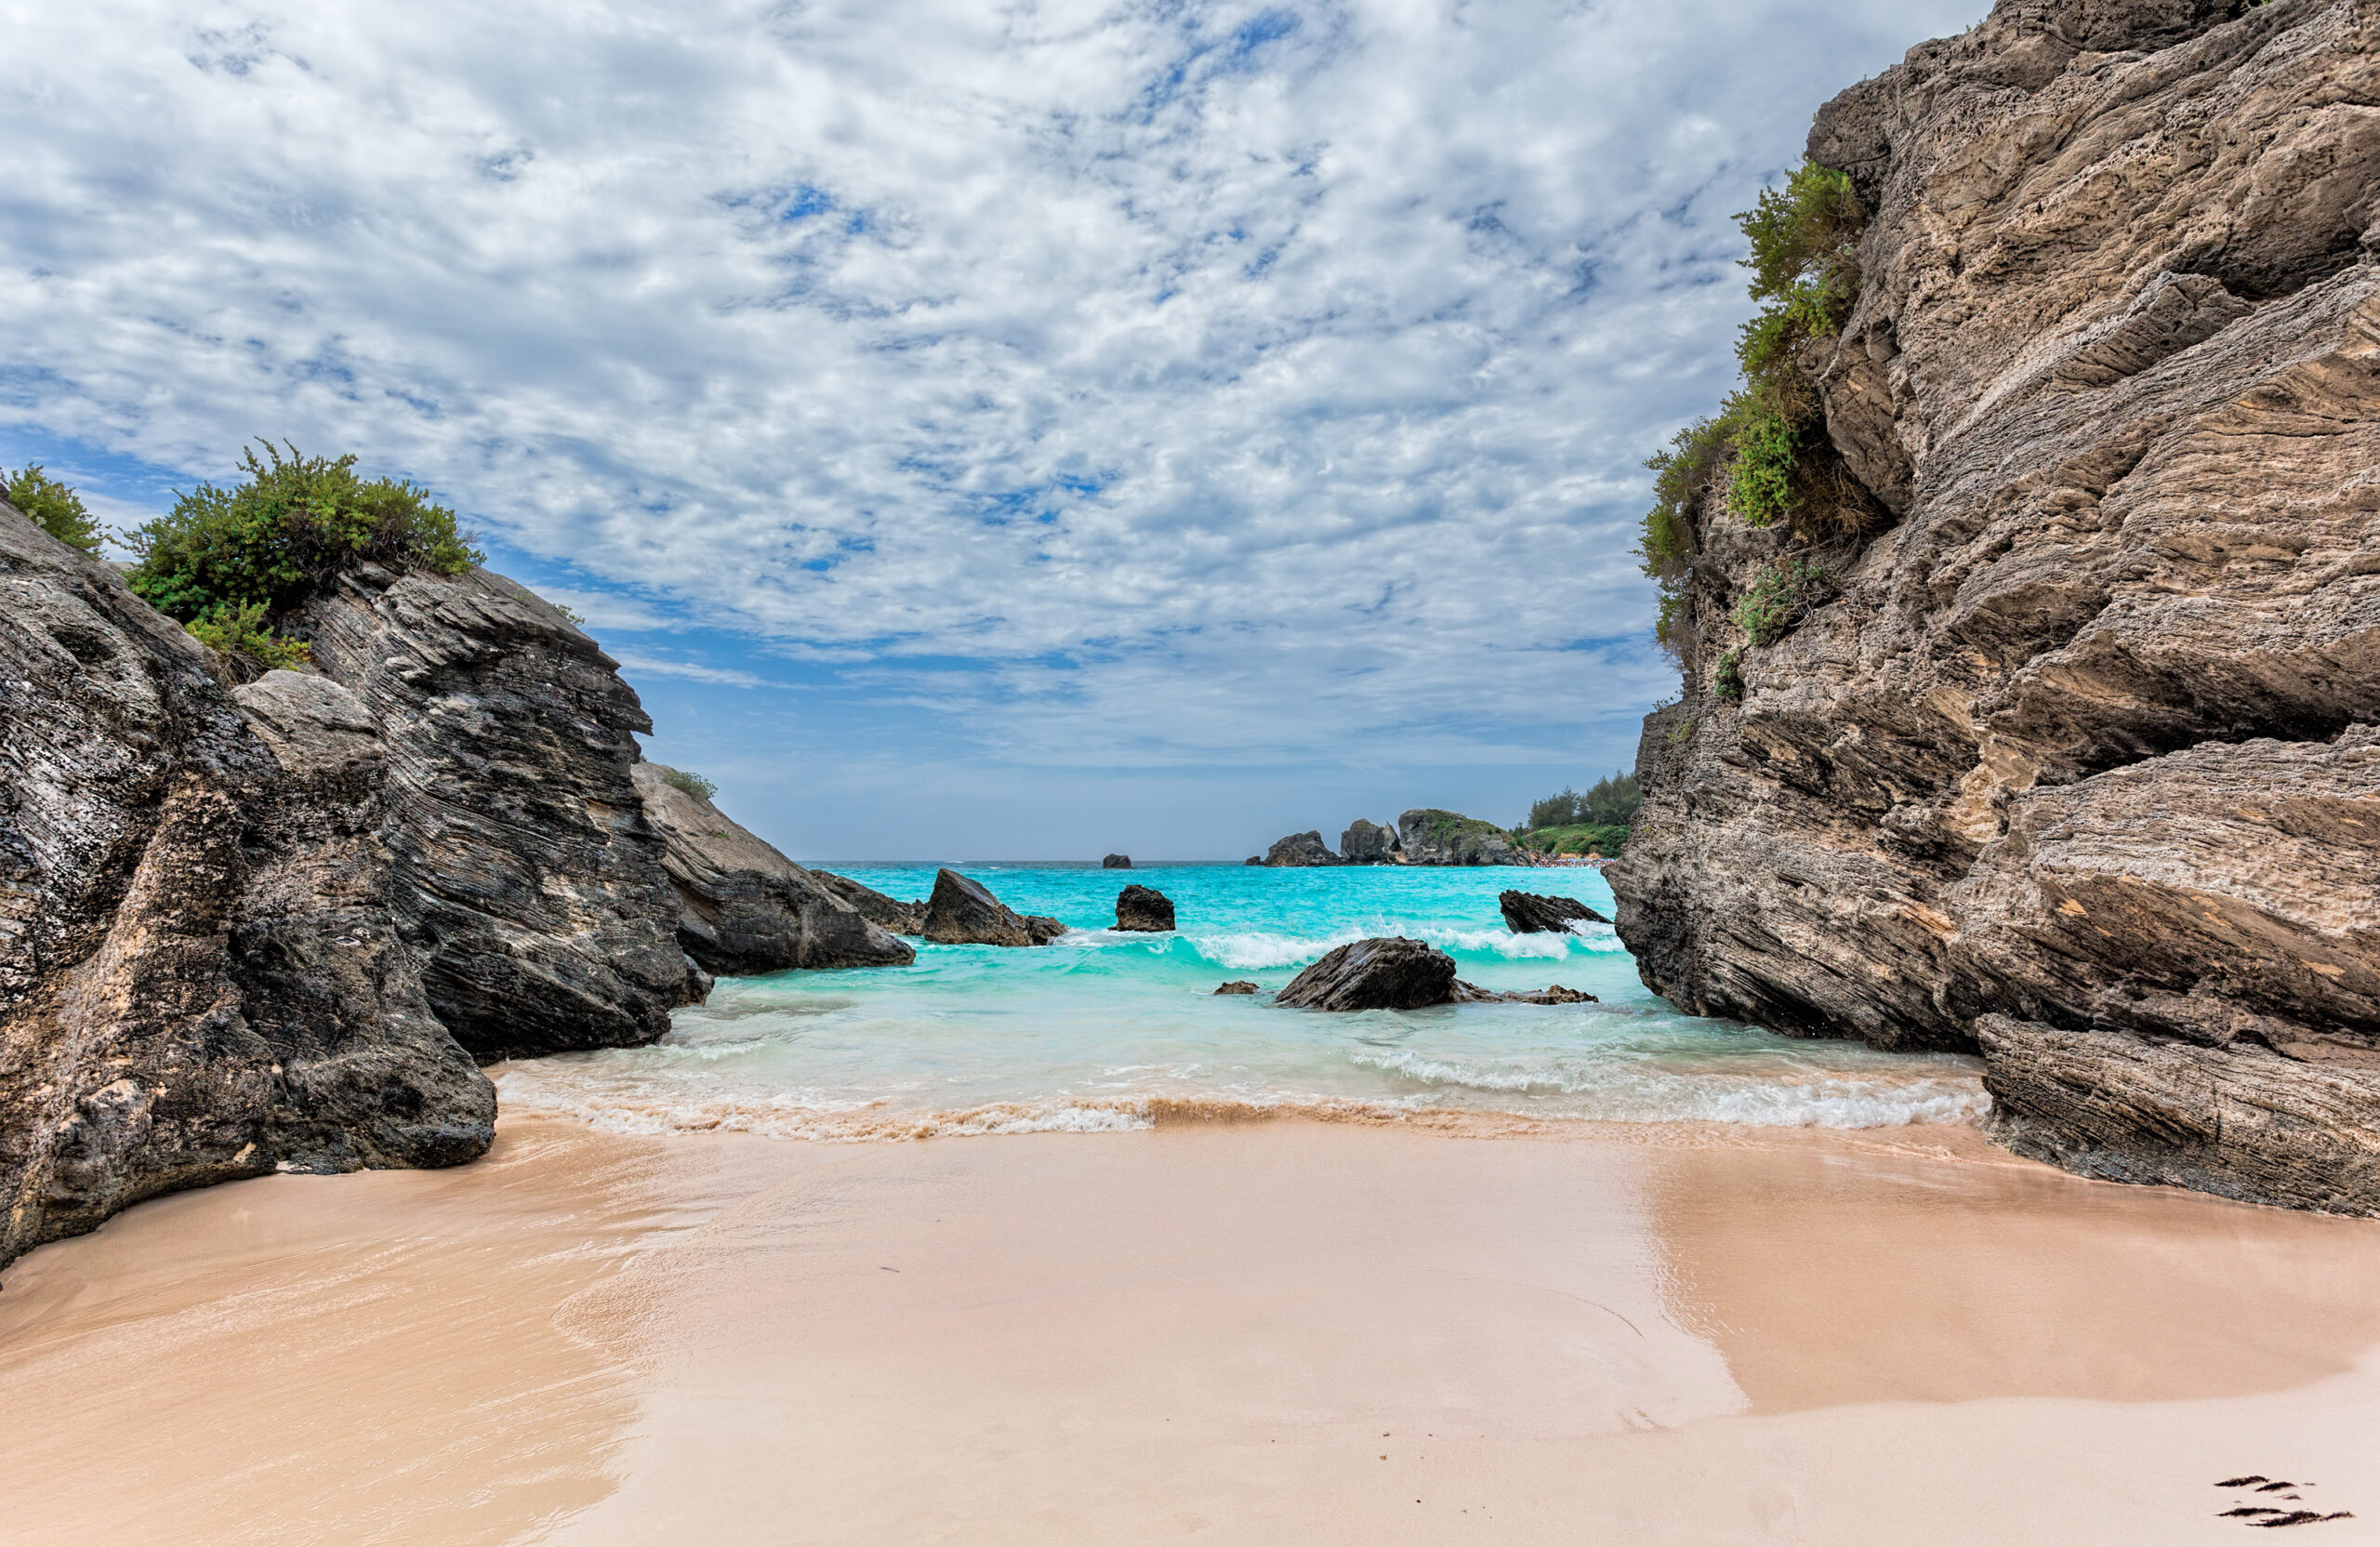 Horseshoe Bay - Pink Beaches in Bermuda